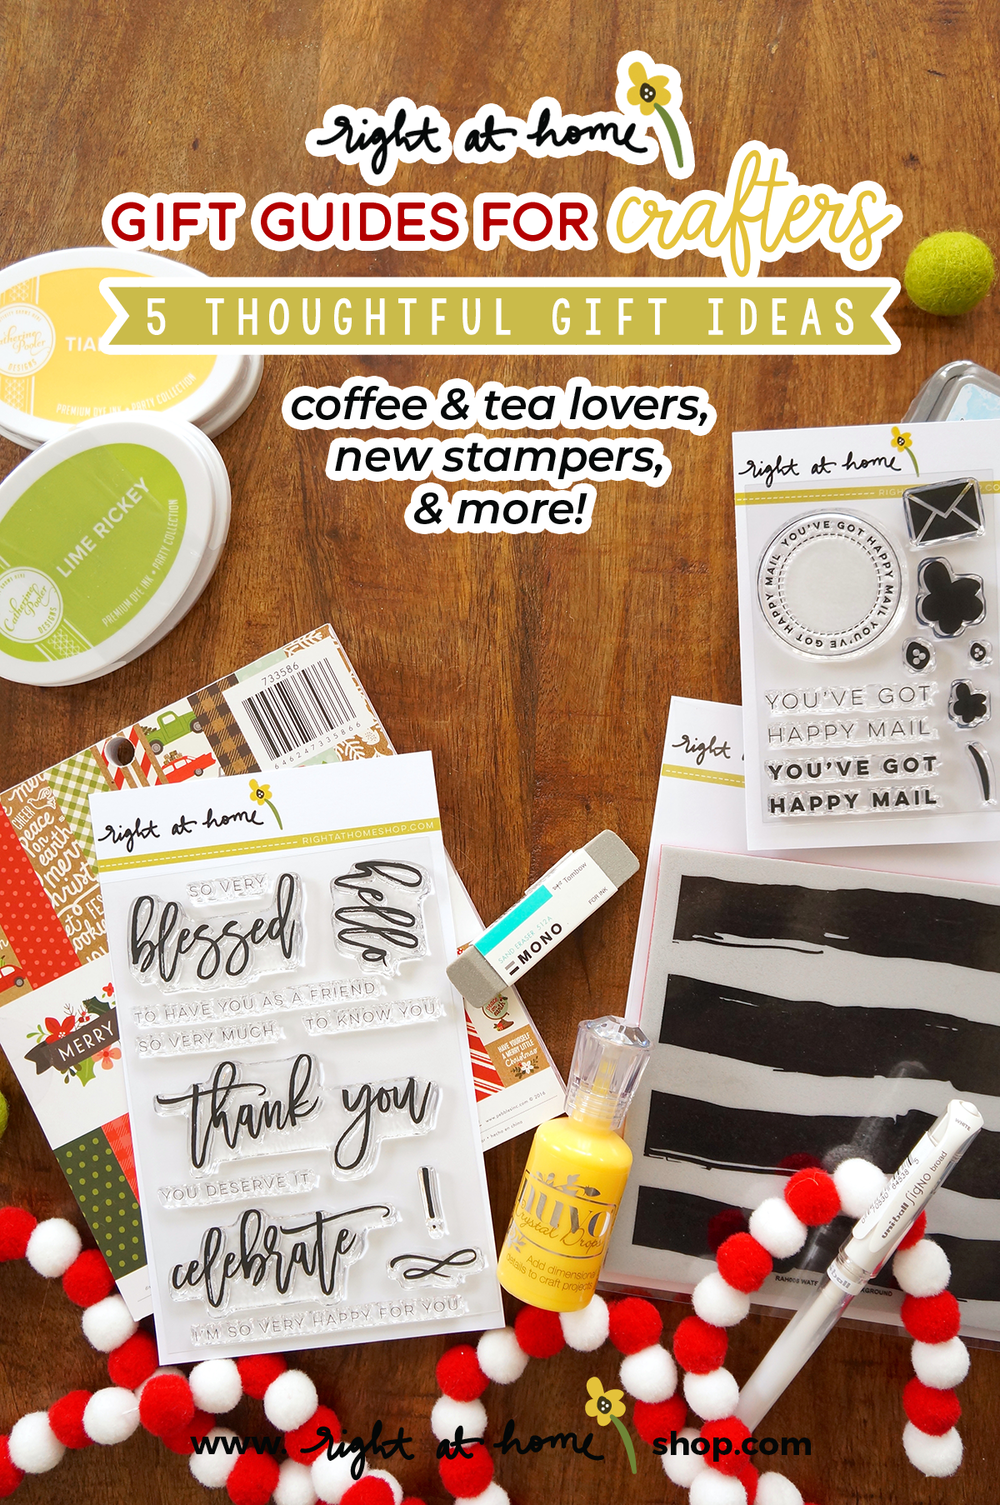 Looking for thoughtful gift ideas for your crafty friends? Visit my post for 5 easy ideas that are sure to make the recipient feel extra loved! Coffee & tea loving cardmakers, new stampers & more. All details at www.rightathomeshop.com/blog.